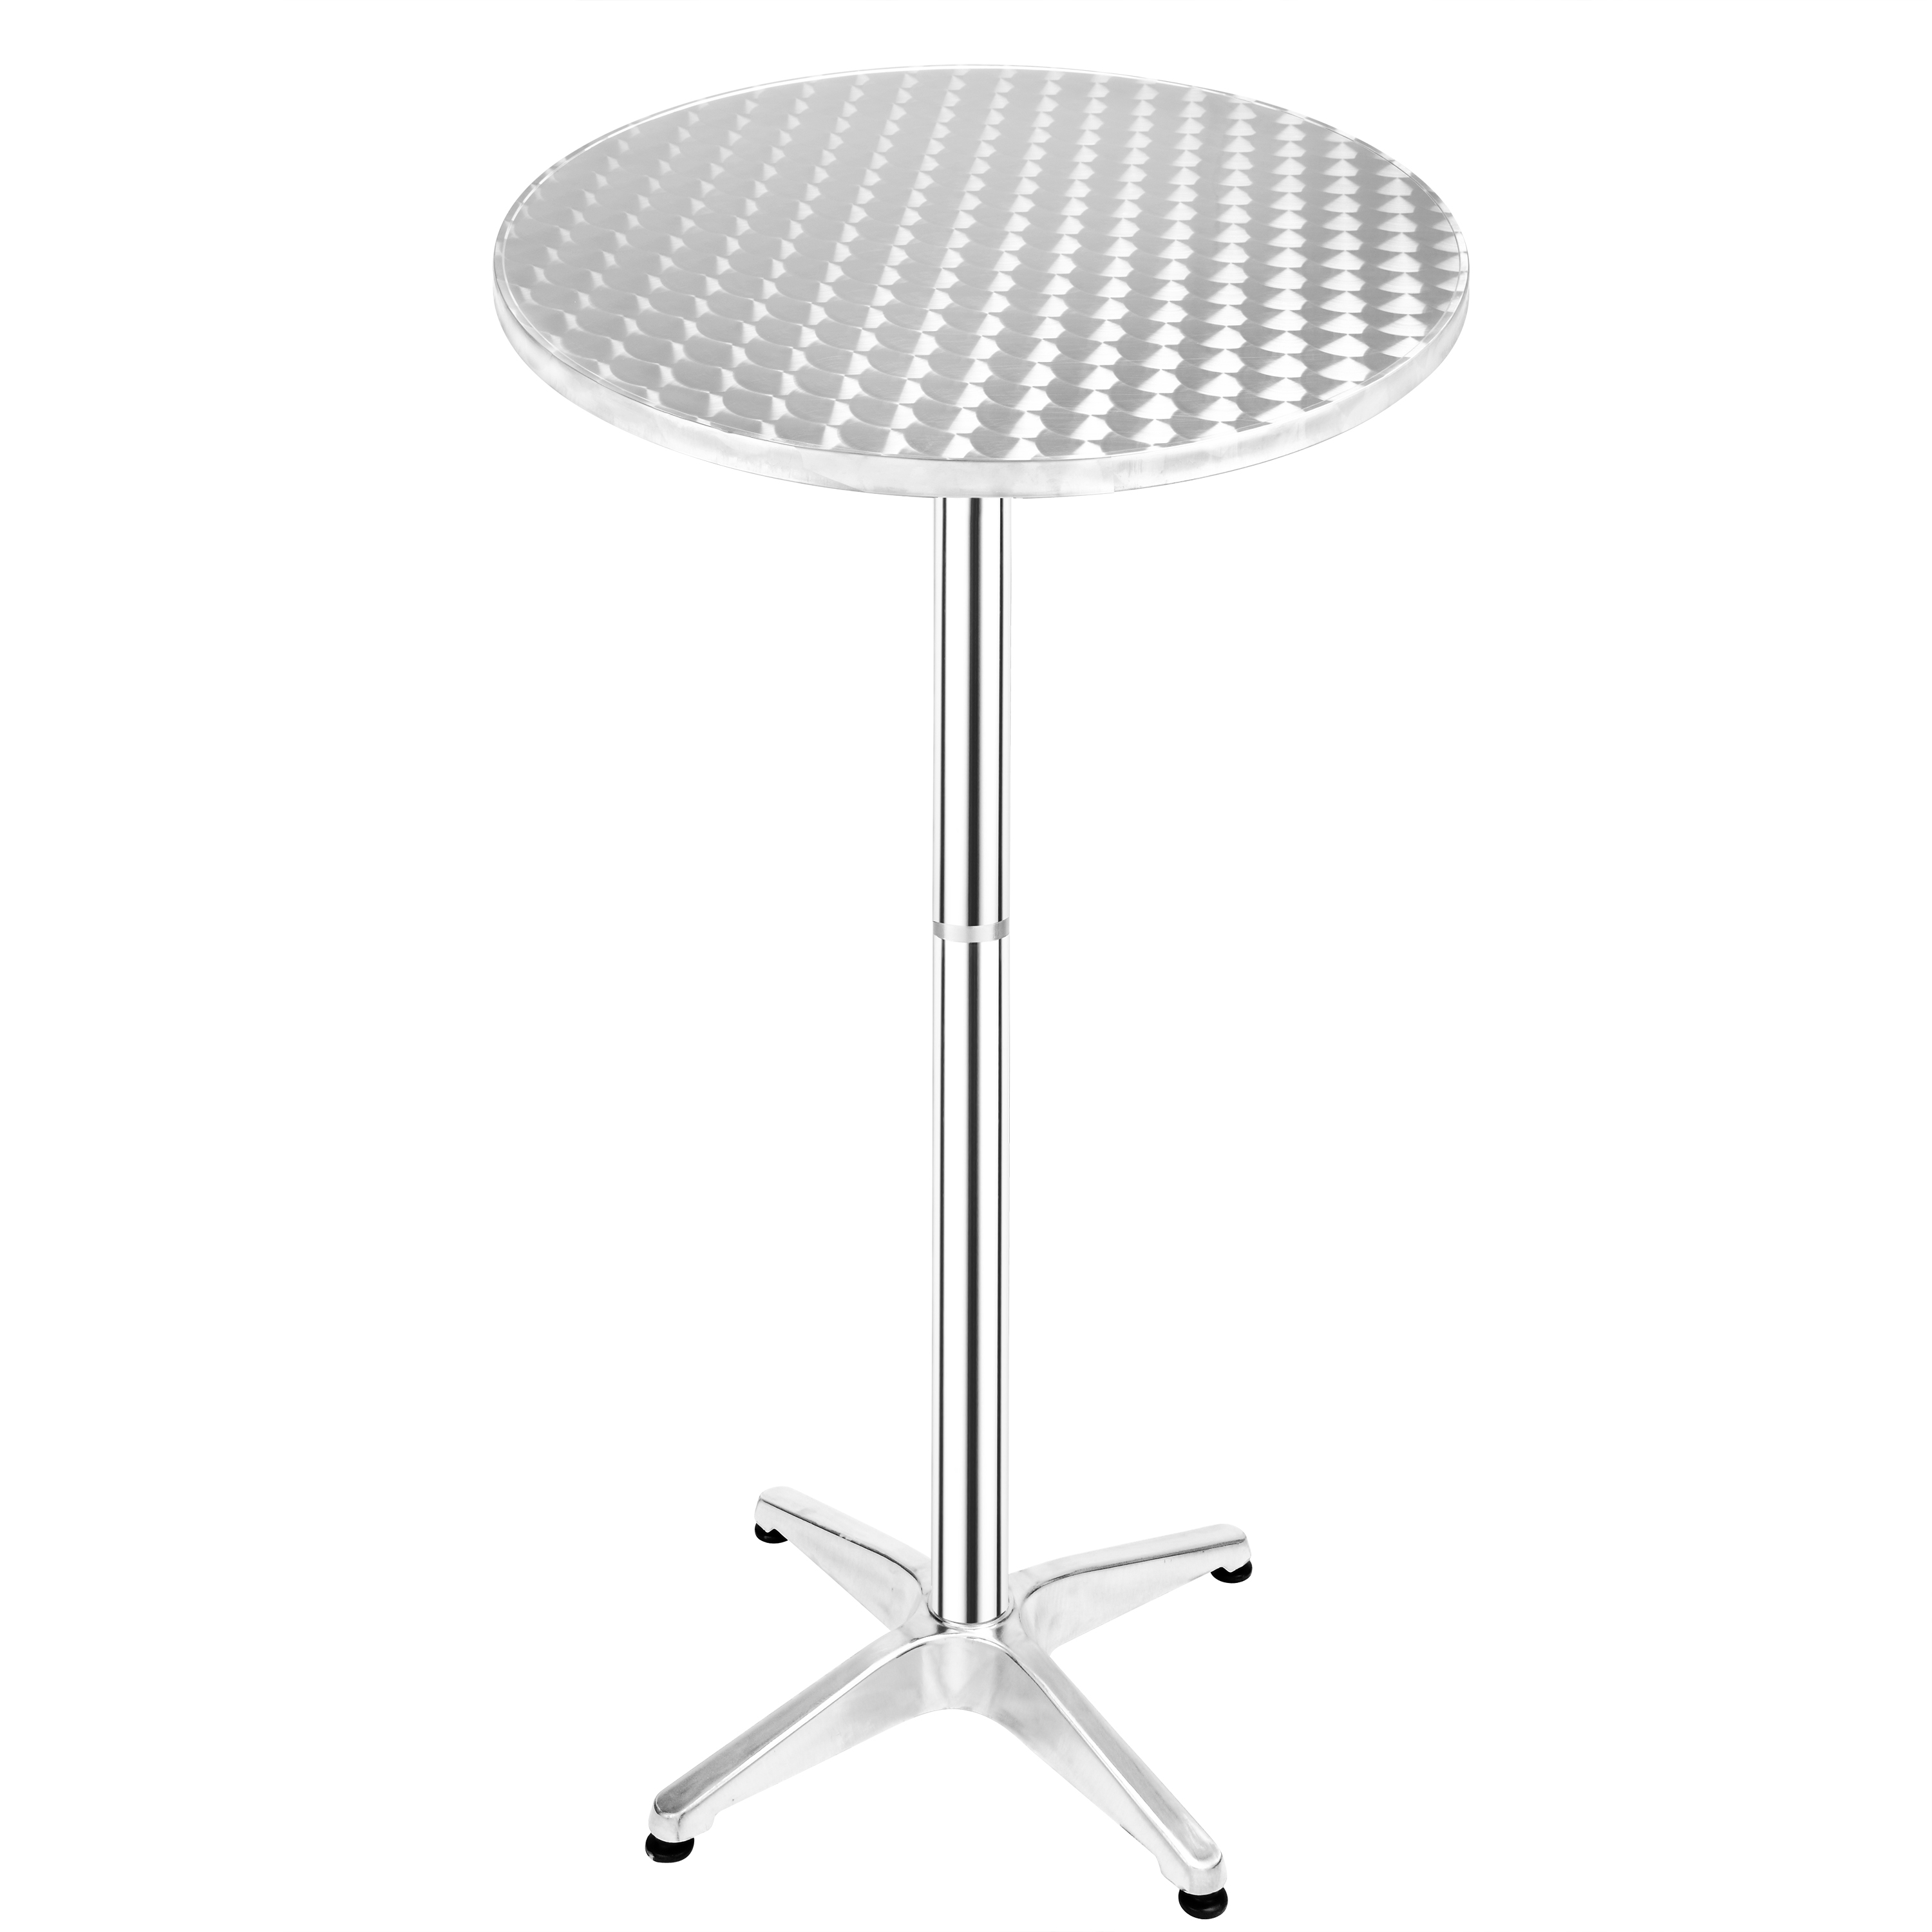 23.25'' Adjustable Height Round Aluminum Indoor-Outdoor Folding <strong>Bar</strong> Table with Base w/ folding